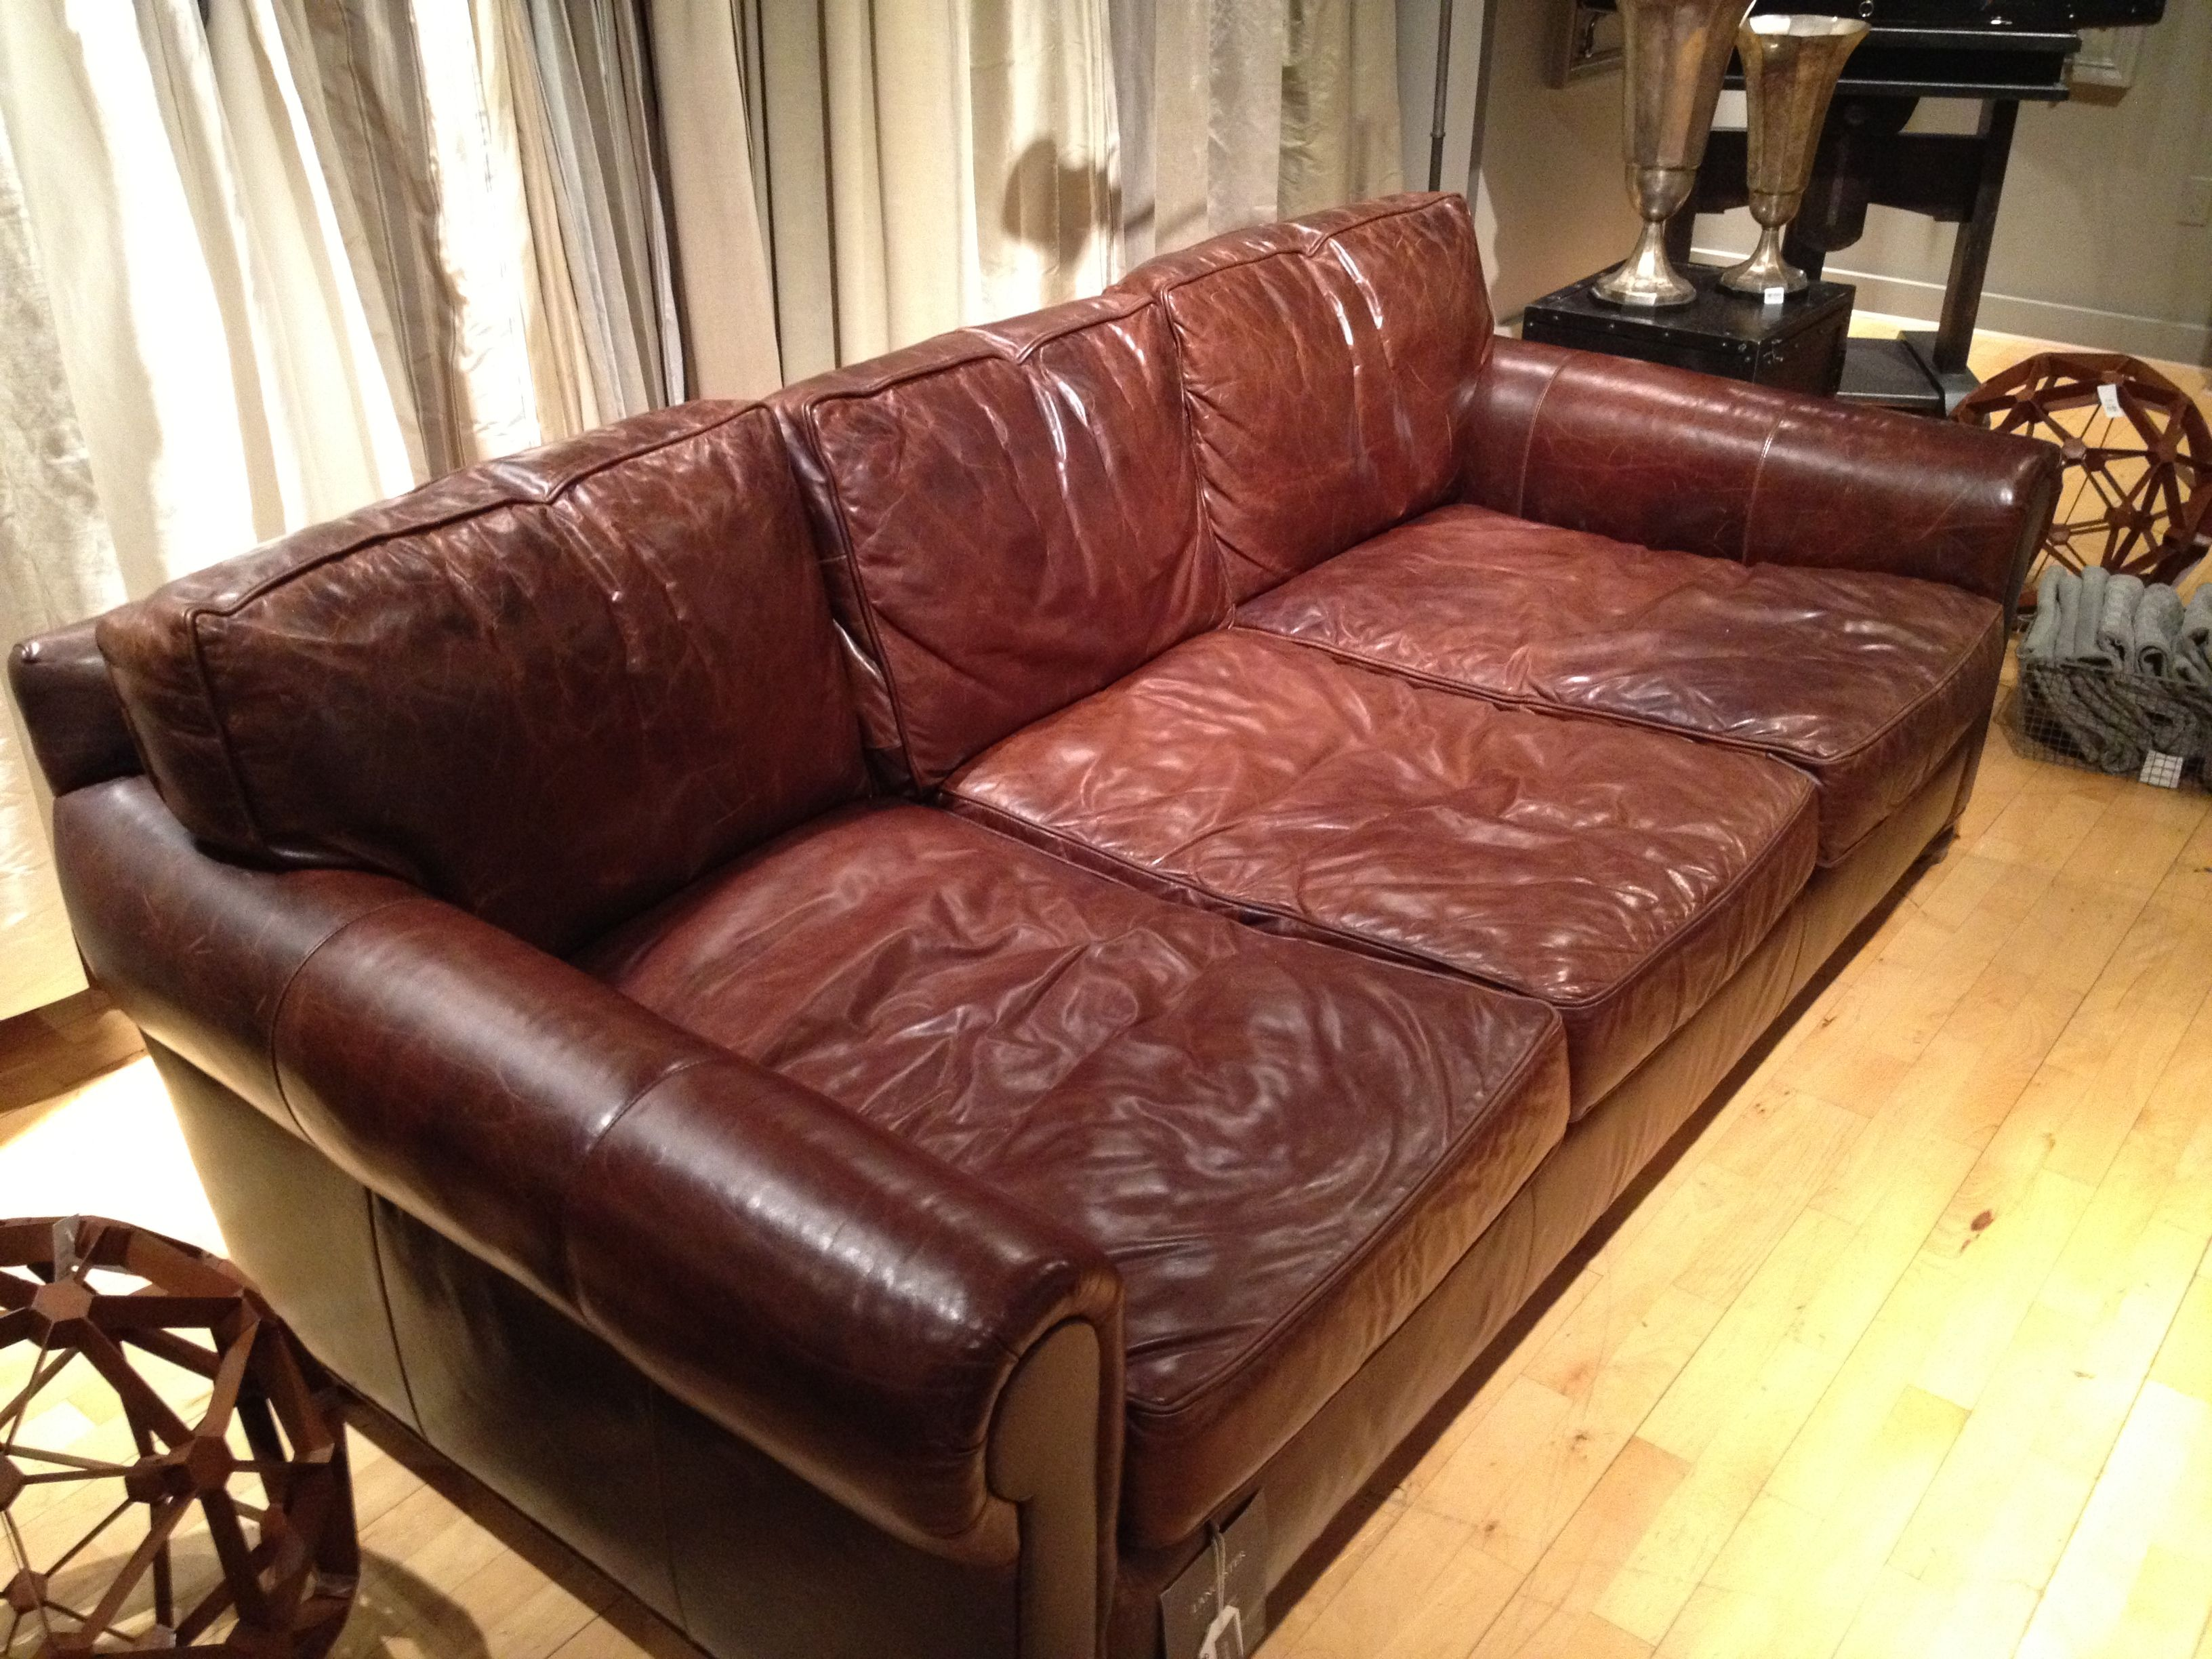 I Tried This Sofa Out At Restoration Hardware The Seats